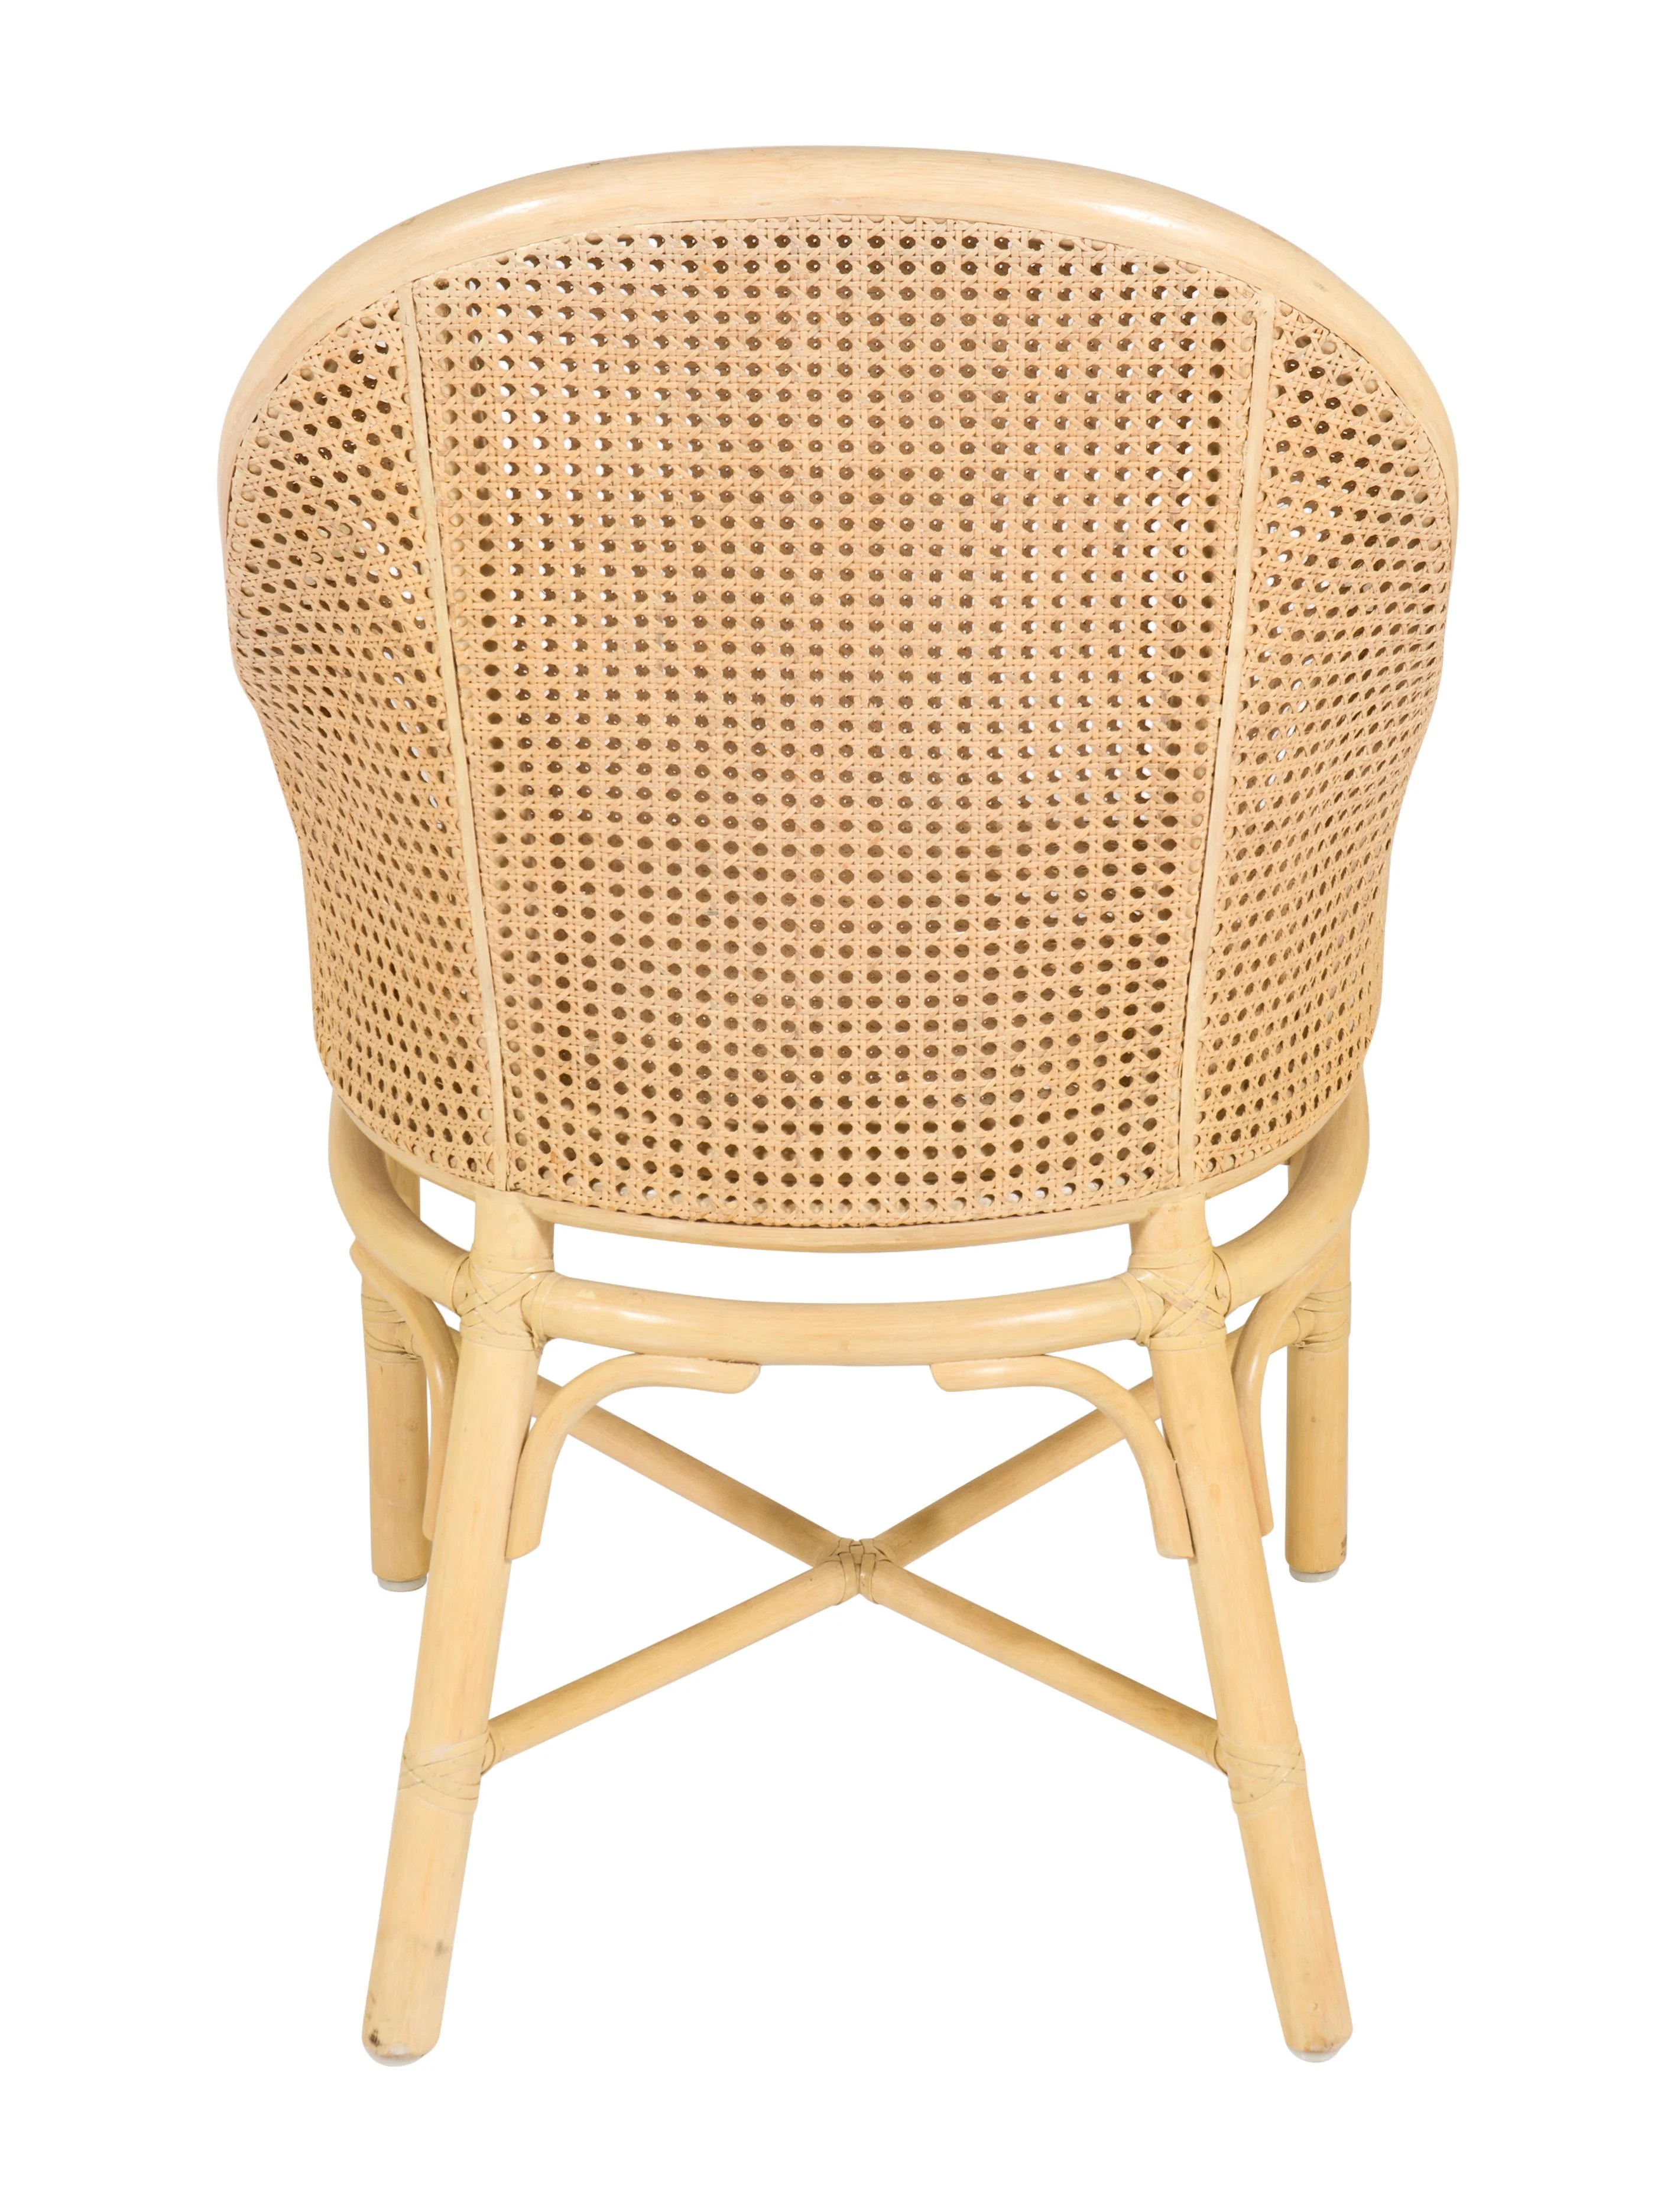 Chair Cane Bucket Chairs Furniture Chair20283 The